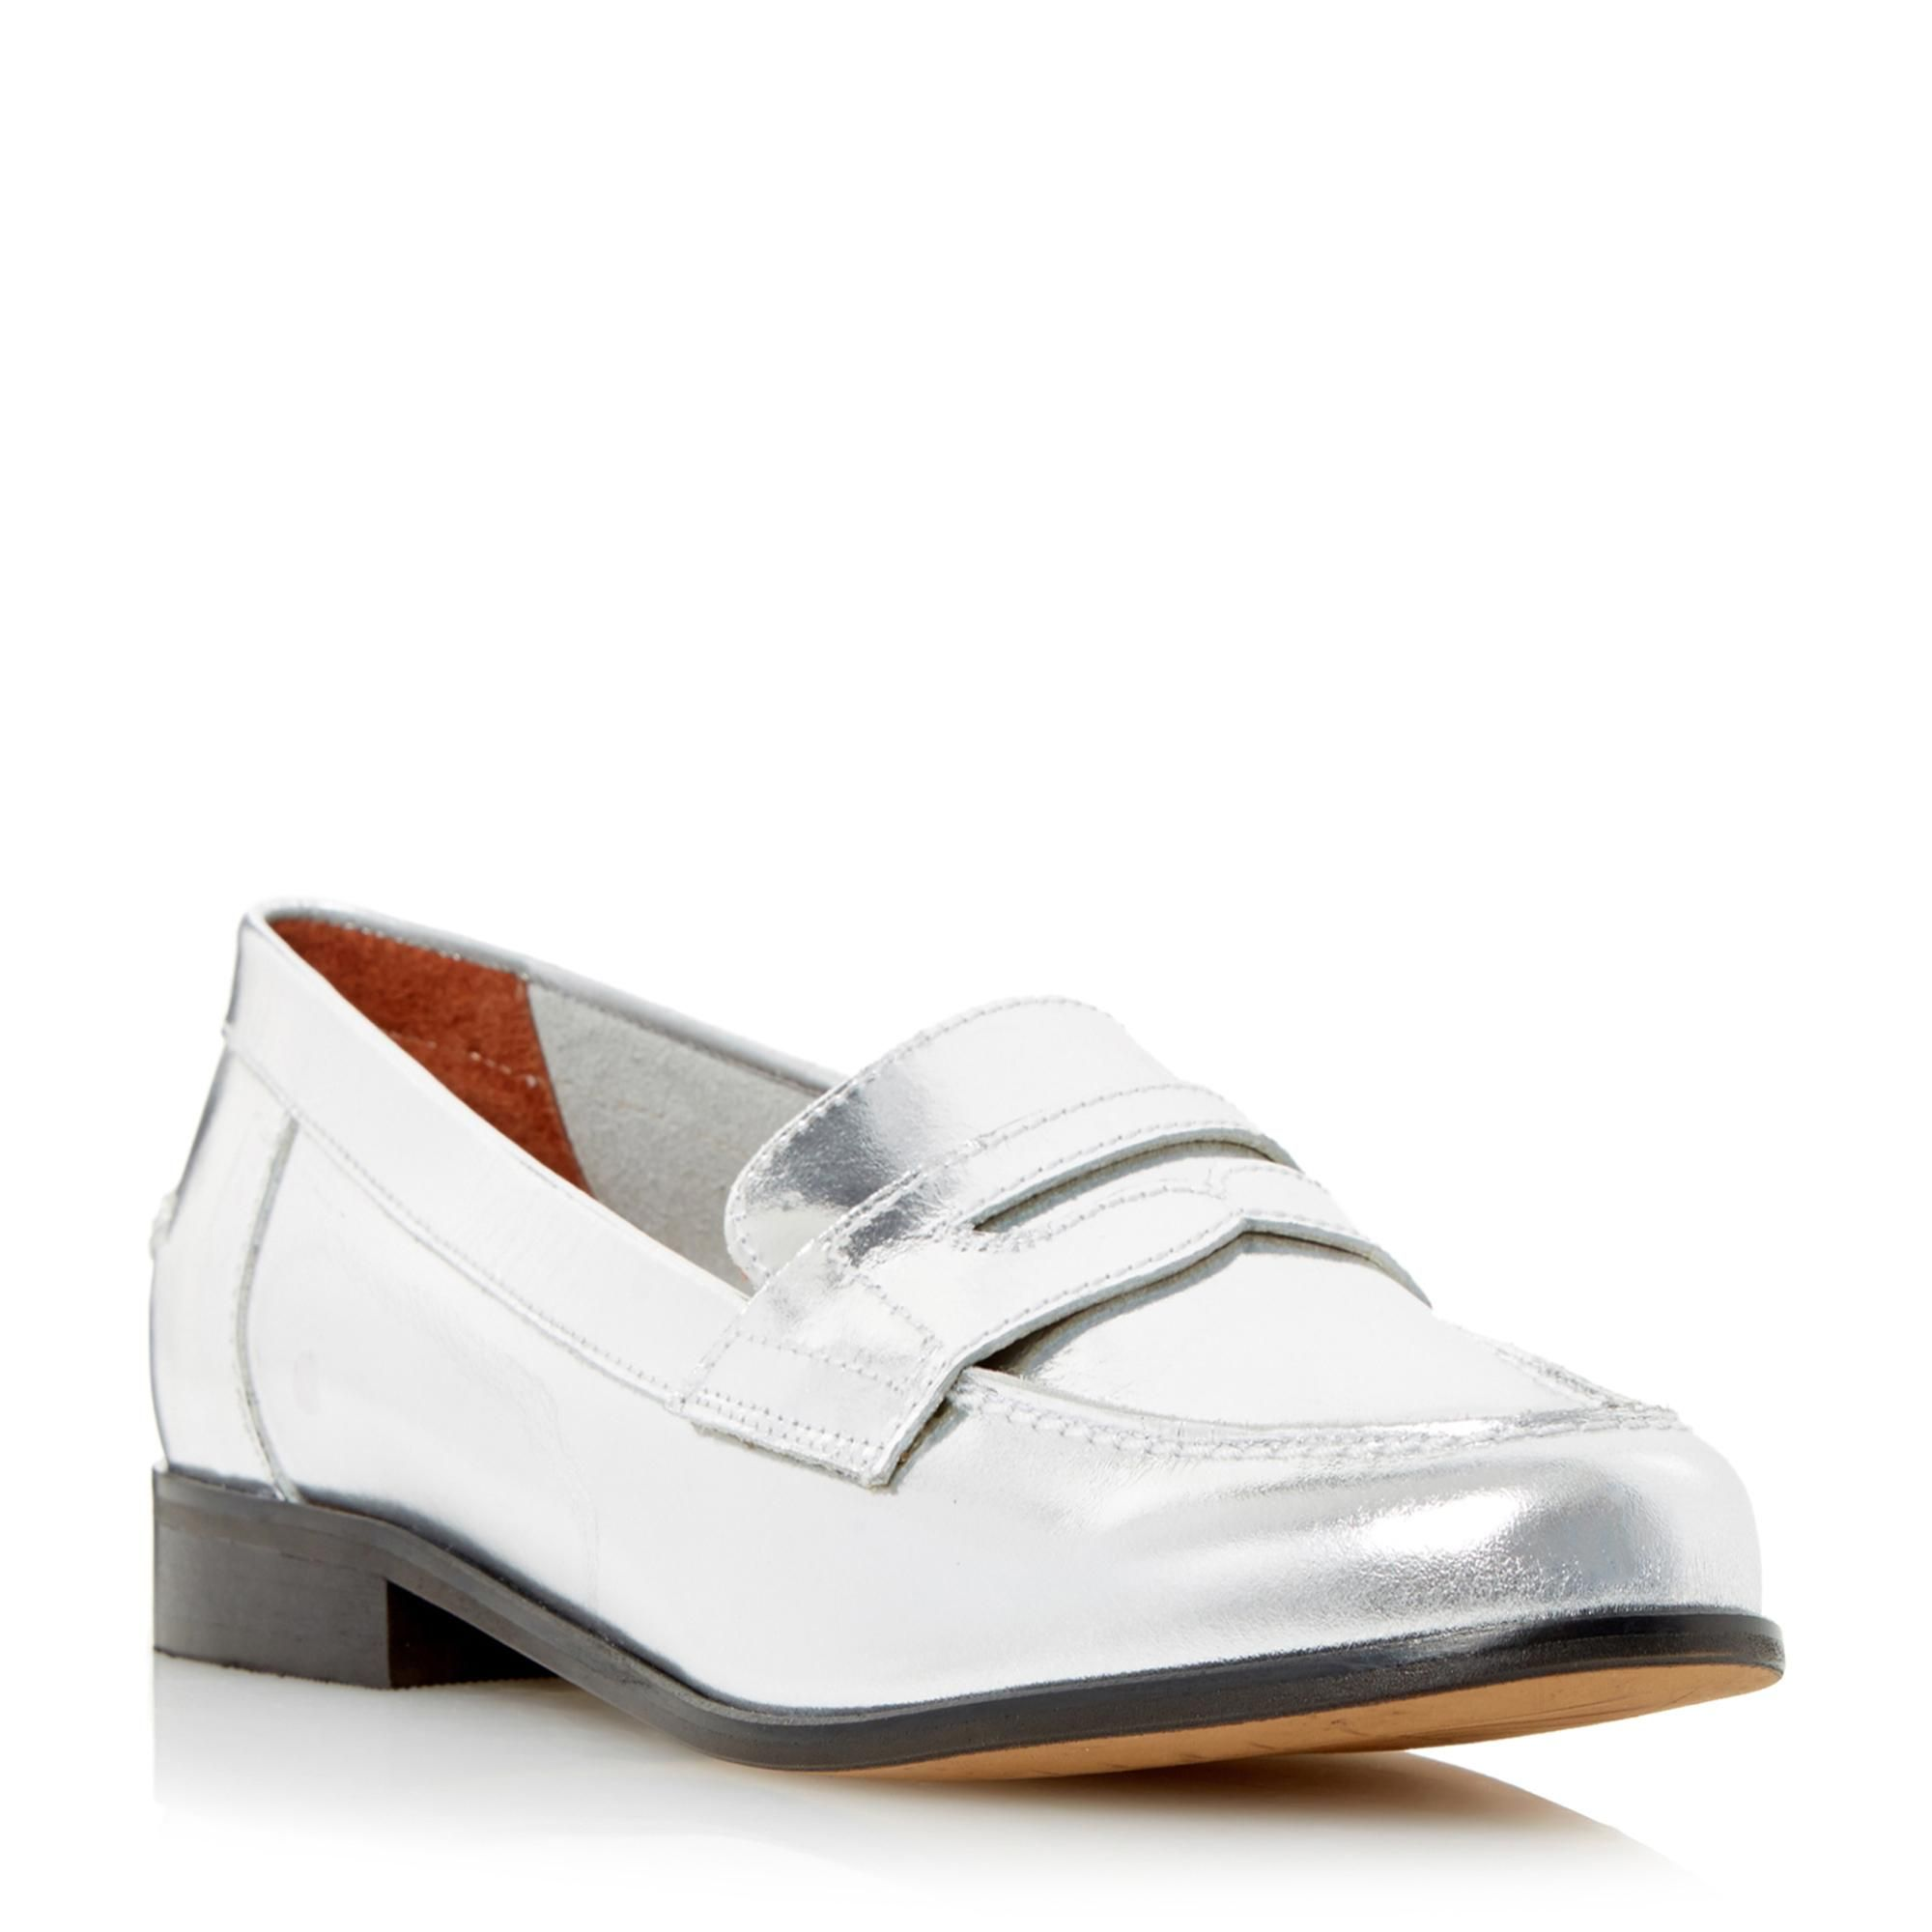 6a490413be5 DUNE BLACK LADIES GABY - Classic Flat Penny Loafer Shoe - pewter ...